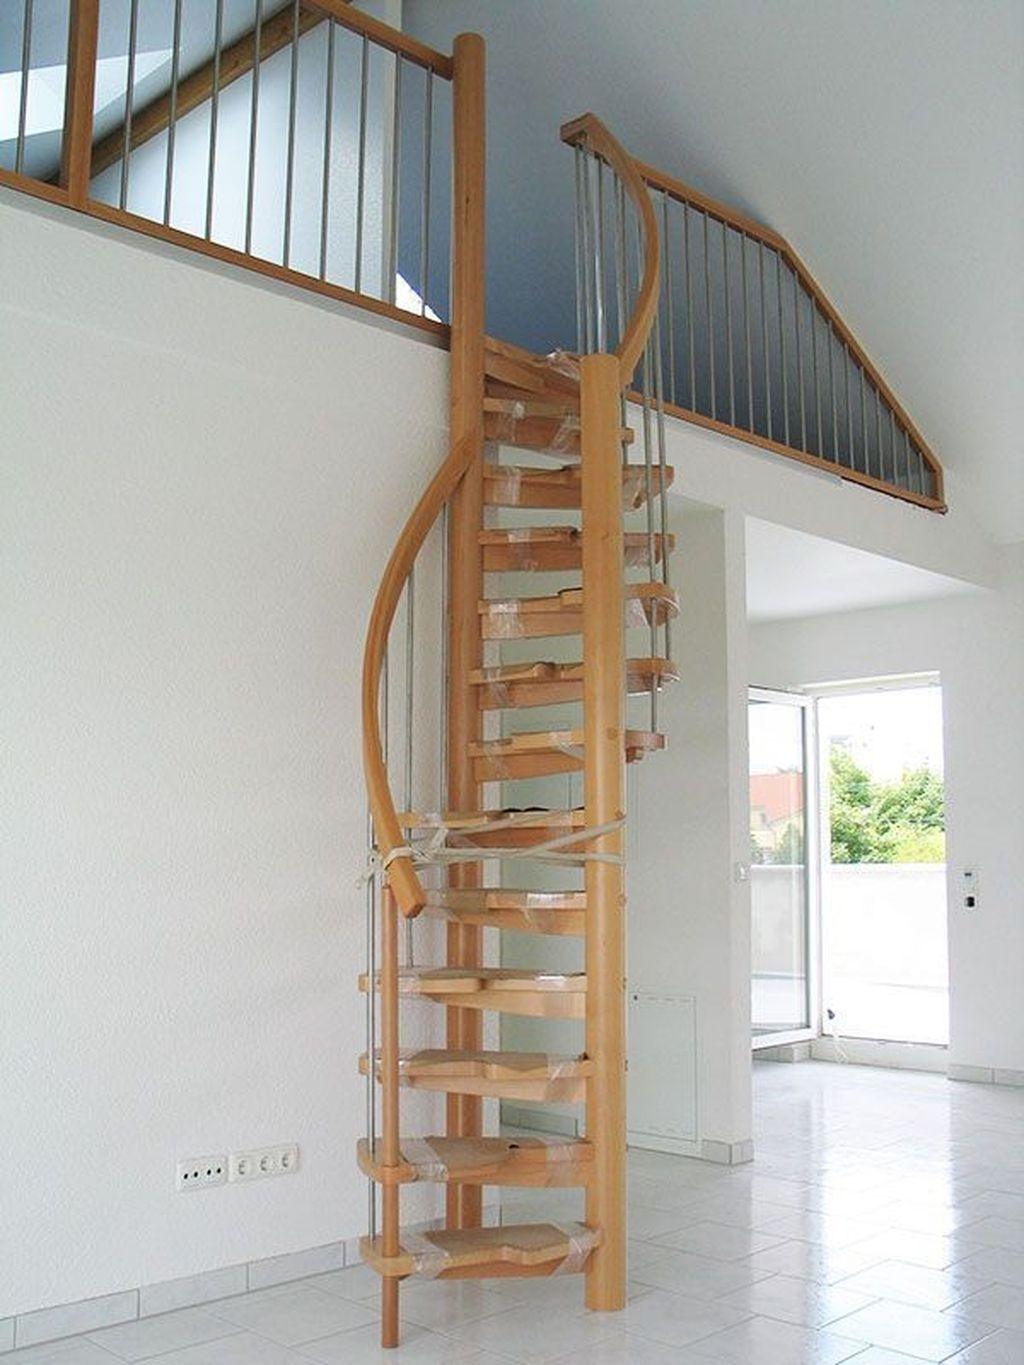 Incredible Stairs Design Ideas For The Attic To Try27